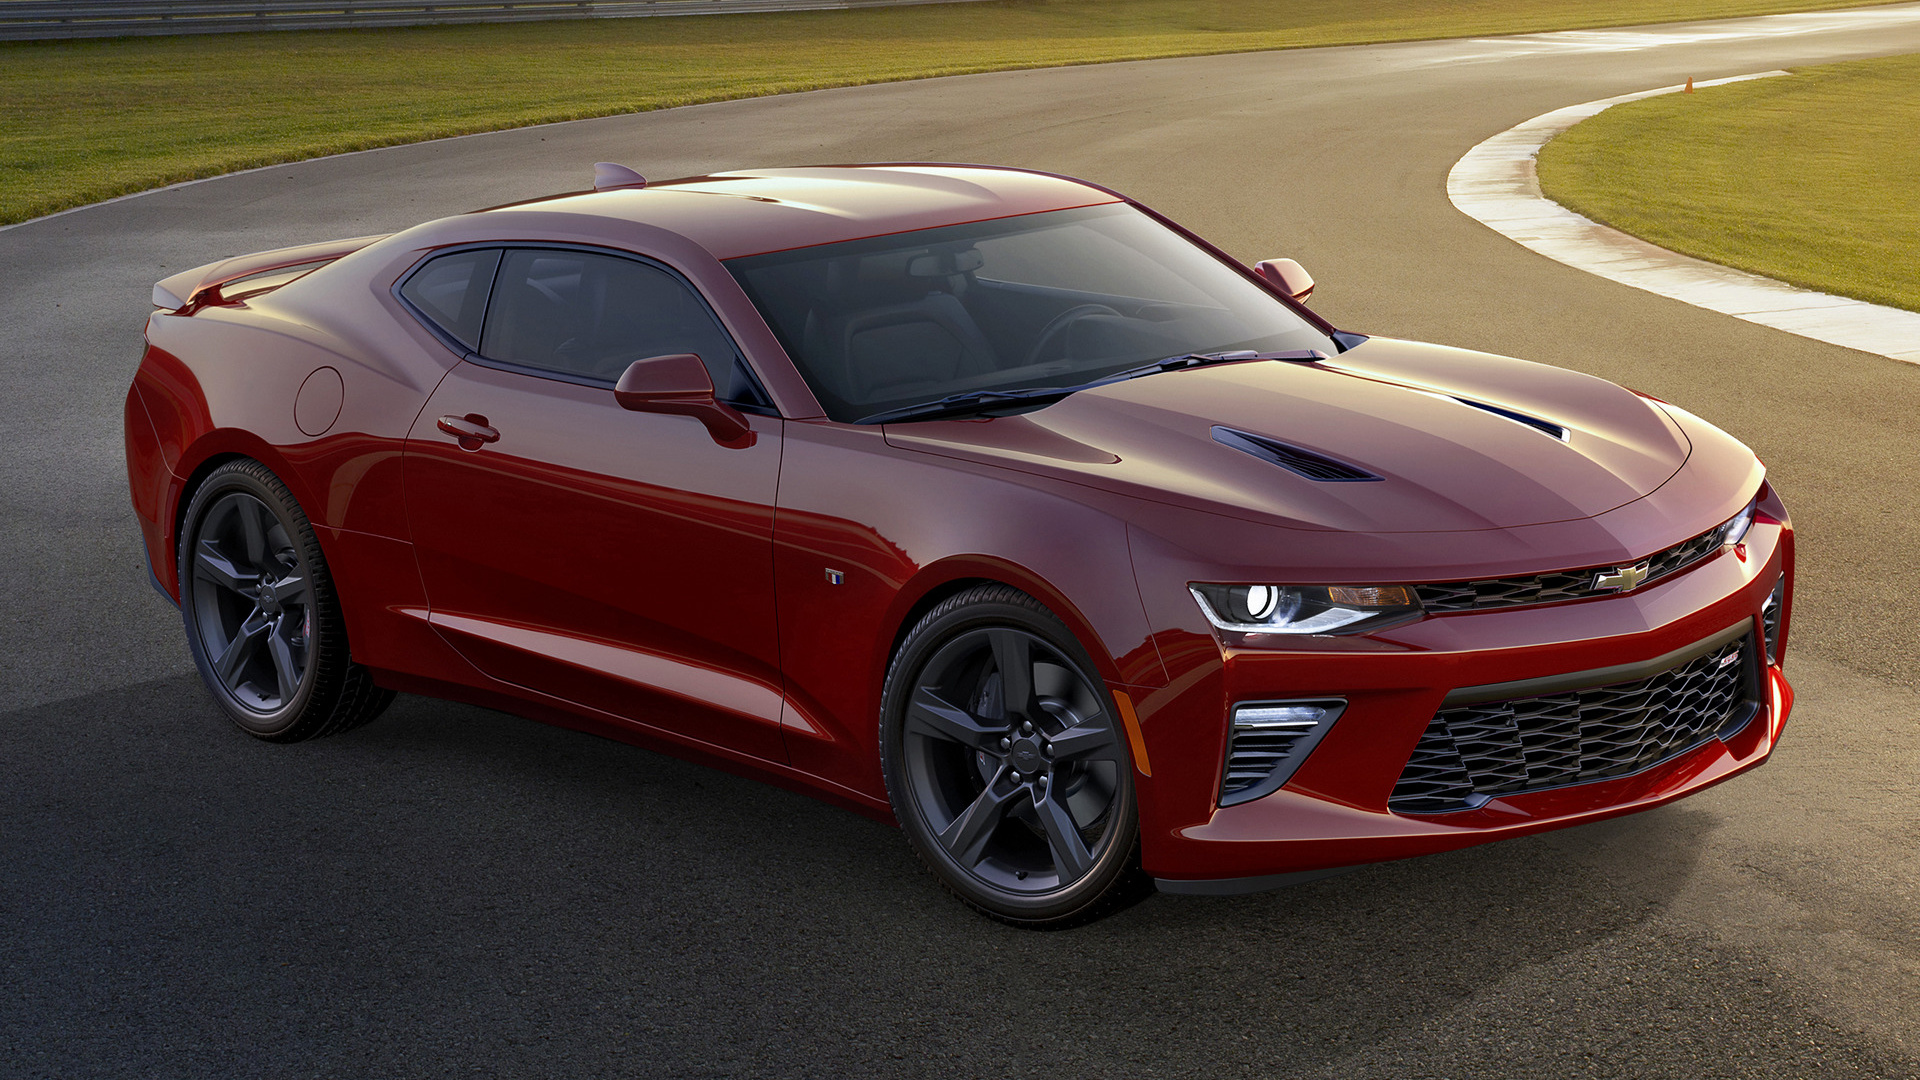 Chevrolet Camaro SS 2016 Wallpapers and HD Images 1920x1080